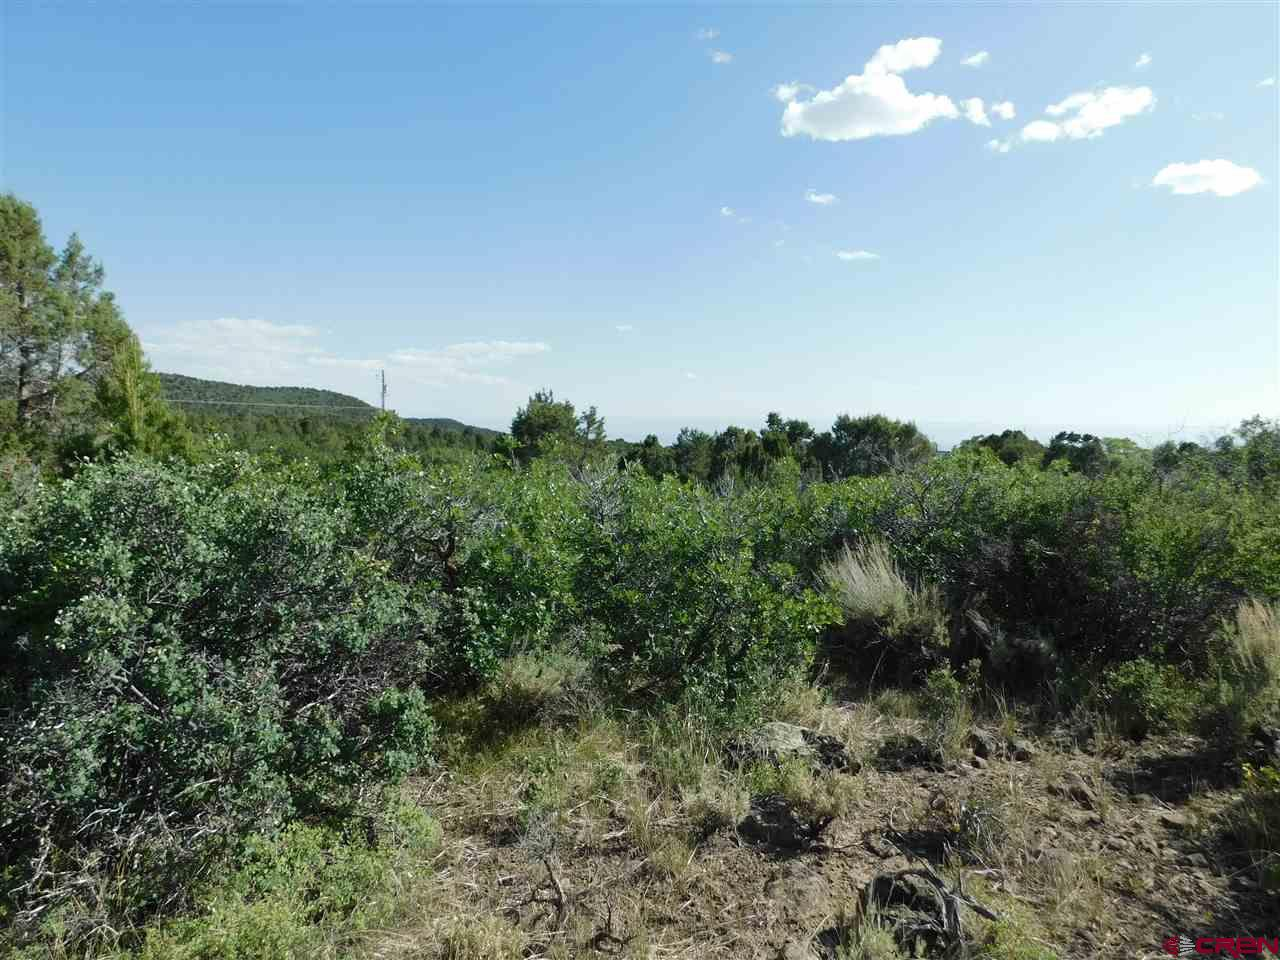 Build your dream Colorado Mountain home here! Amazing Views from this 2 acre parcel that borders Milk Creek. Paid and installed Upper Surface Creek domestic water tap. Nearby installed fire hydrant for better home insurance rates. No mobile homes but modular homes permitted. Livestock allowed. Located North of Cedaredge, close to town and the Grand Mesa!!